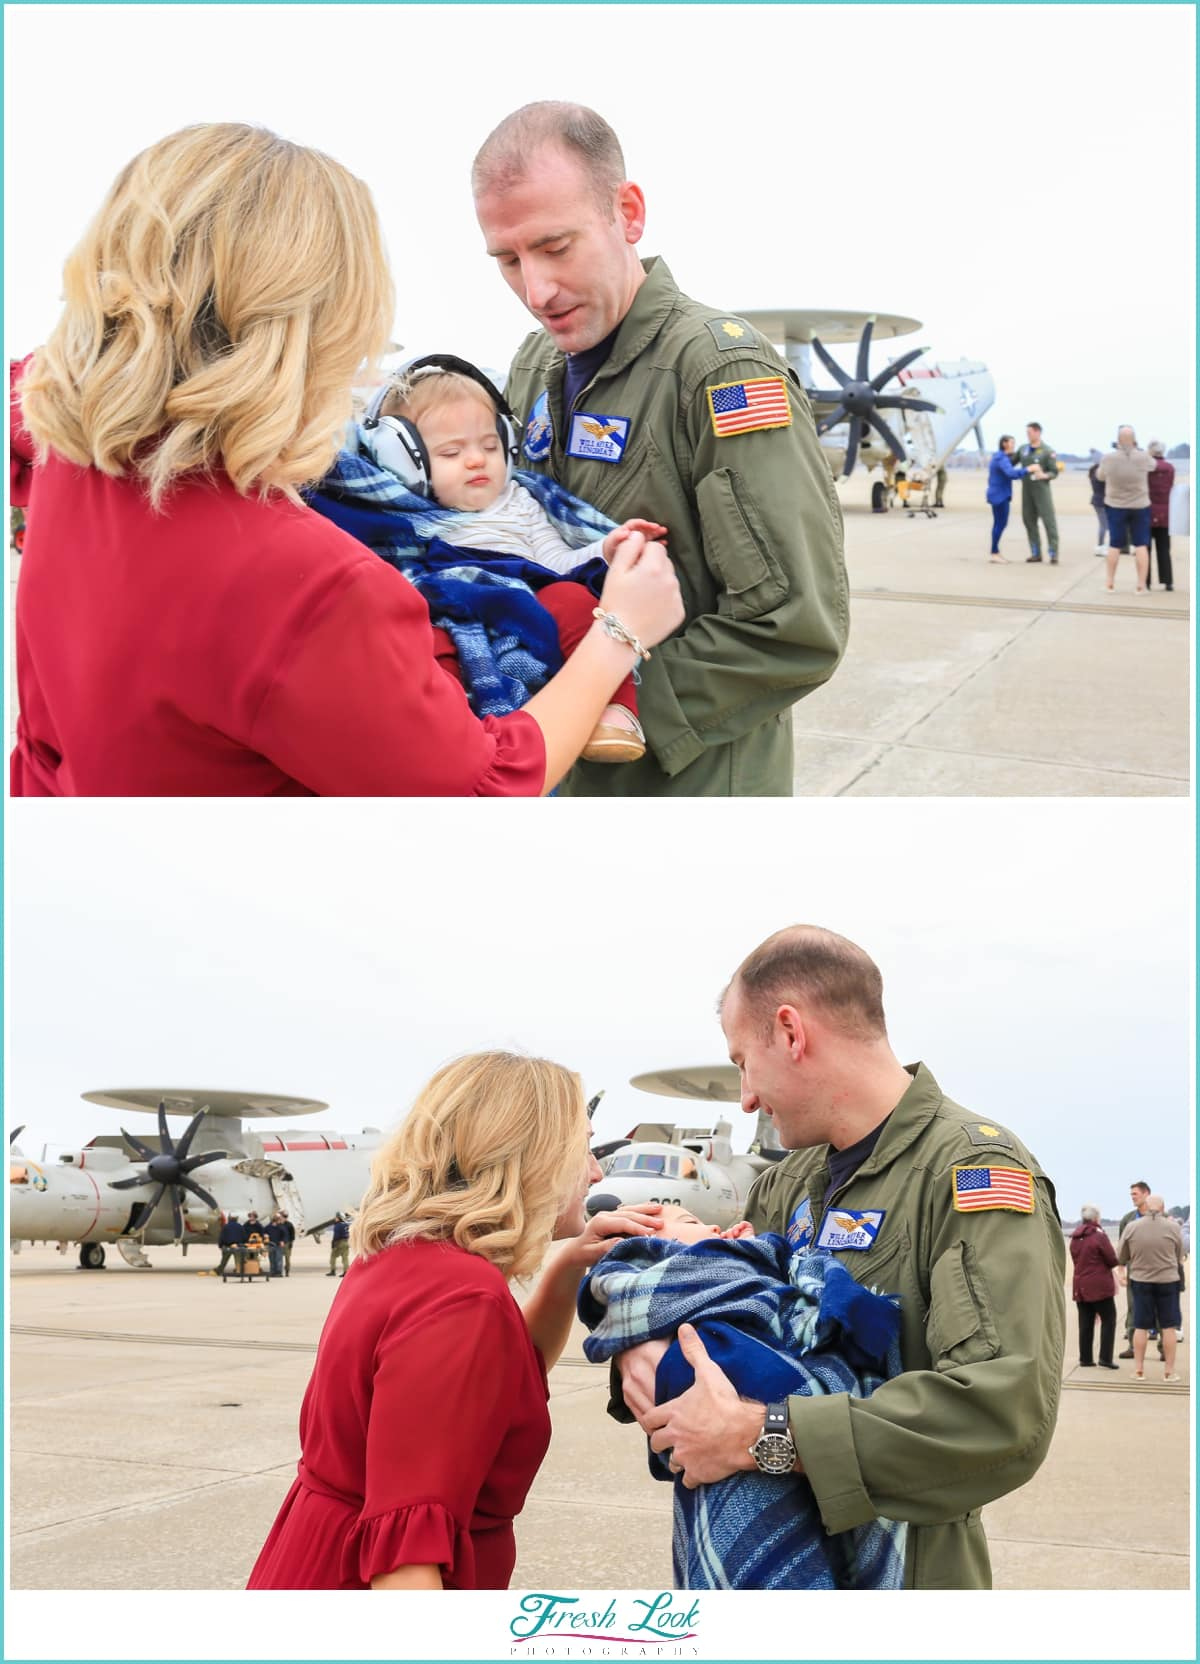 snuggling the baby after deployment